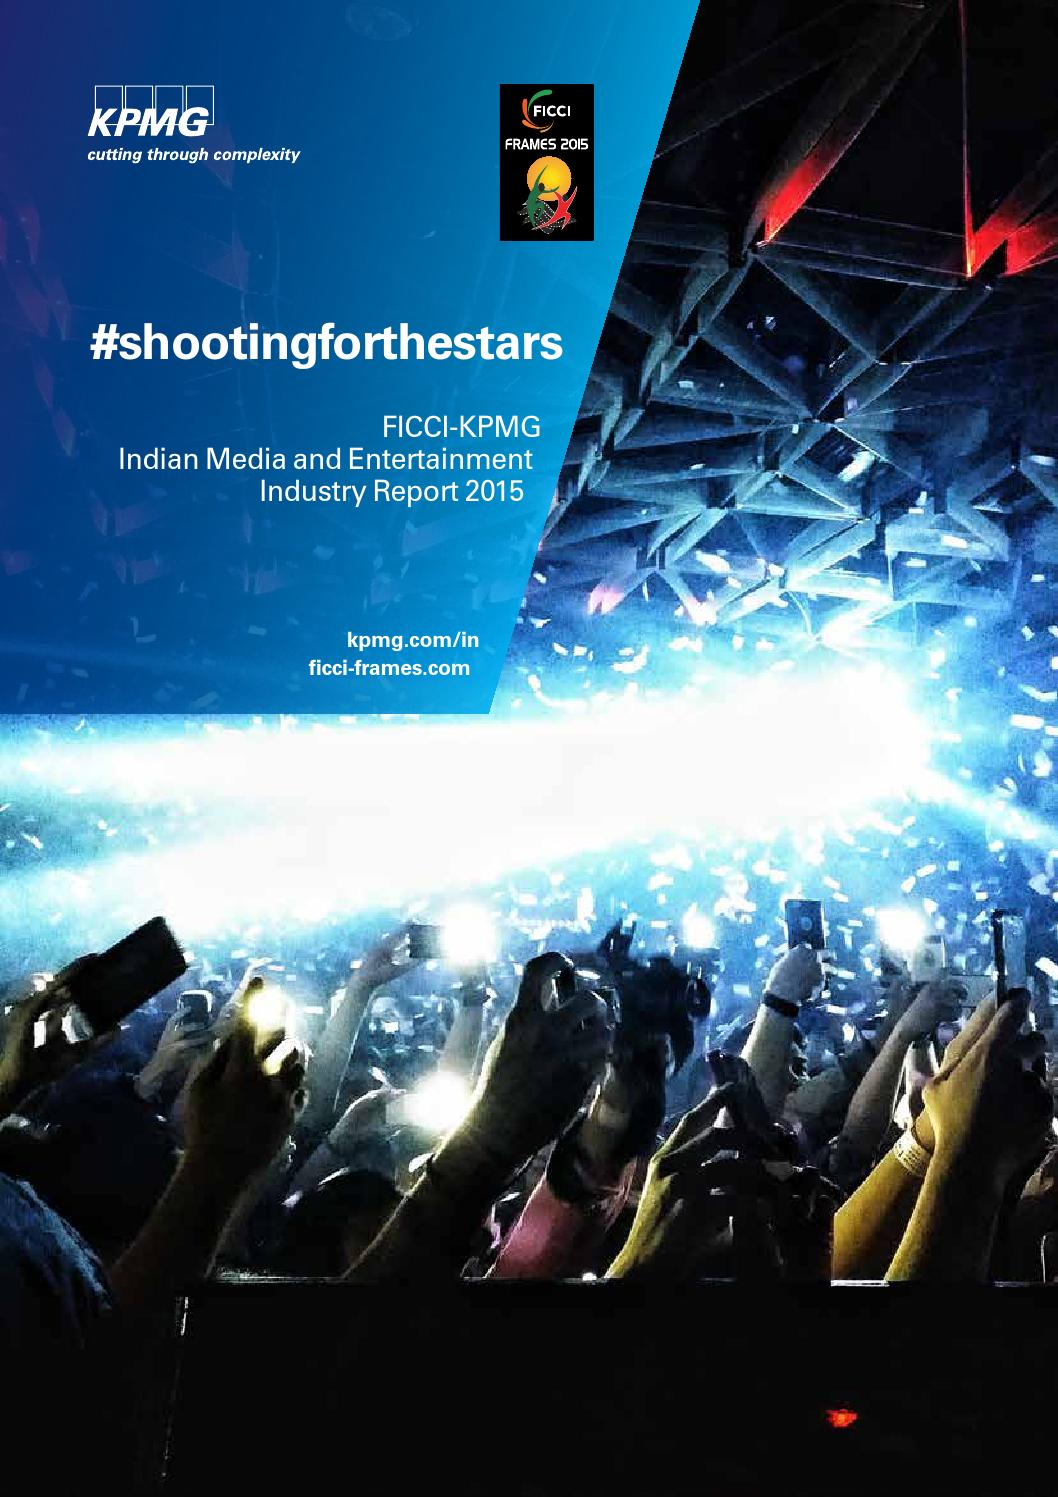 ficci kpmg indian media and entertainment industry Welcome to kpmg in india's media and entertainment industry report micro-site kpmg in india are proud to be the knowledge partners for the ninth consecutive year for ficci frames 2017.